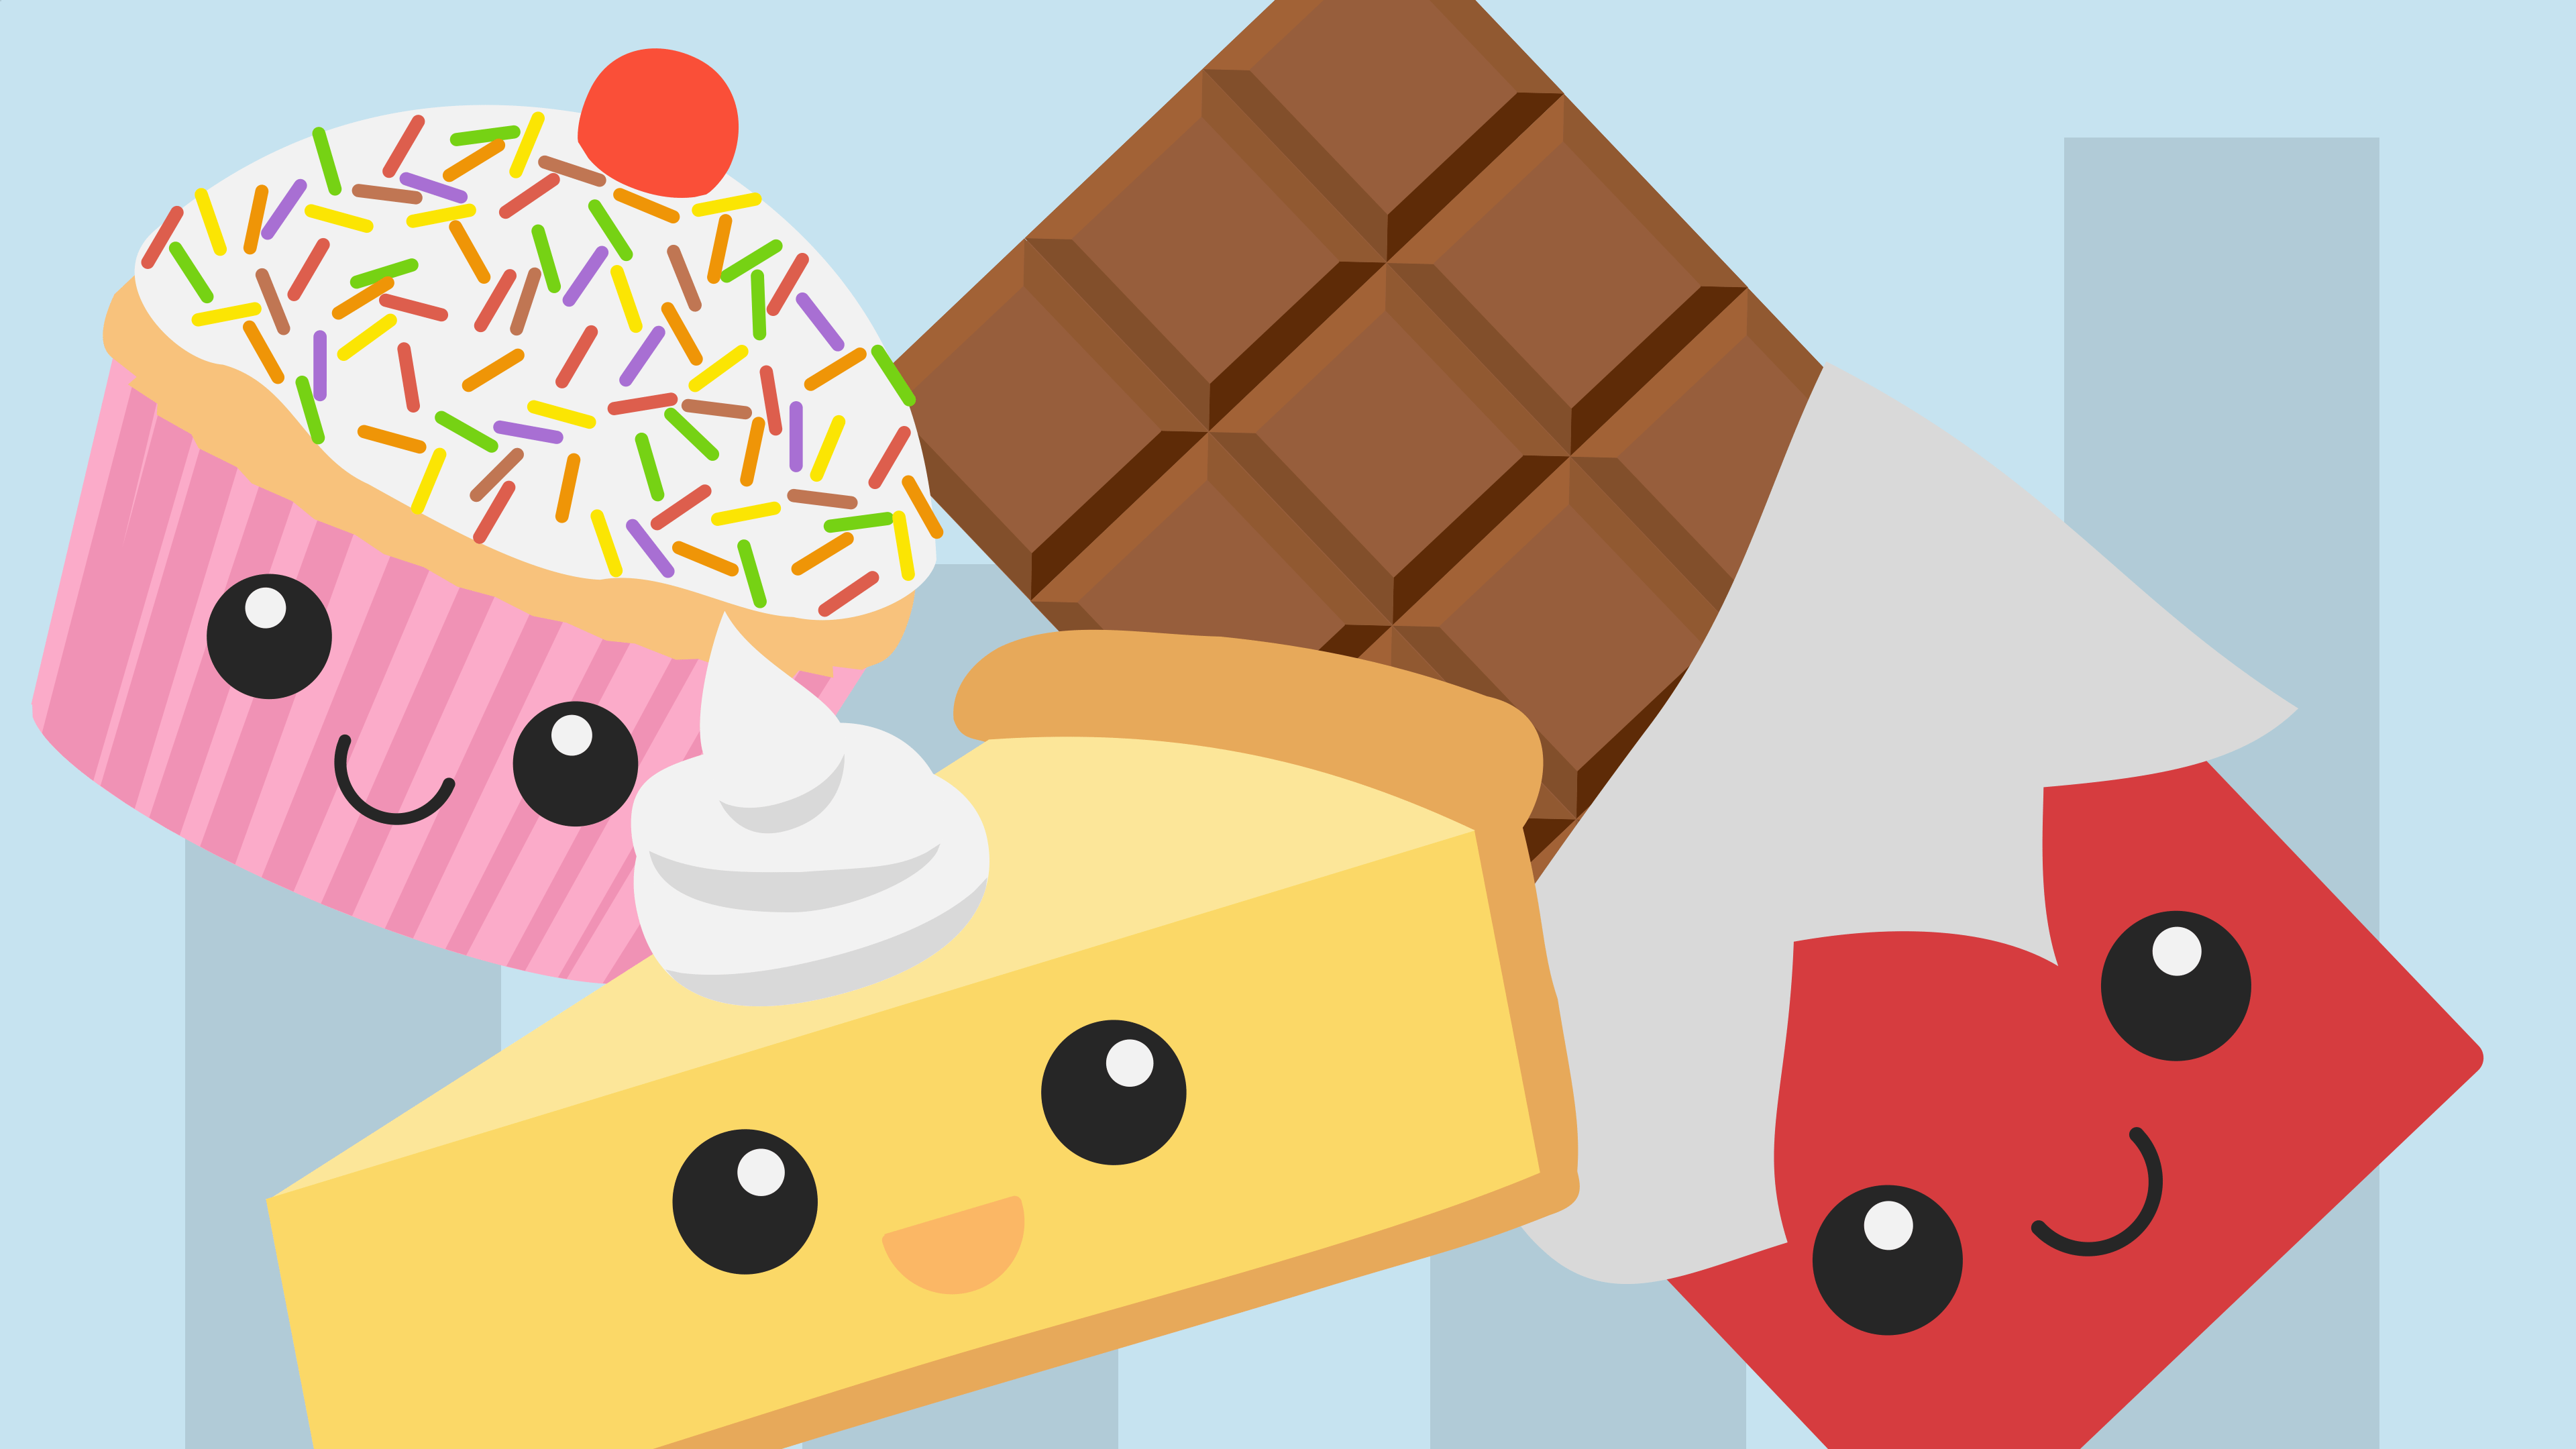 A happy cupcake, a happy pie and a happy chocolate bar